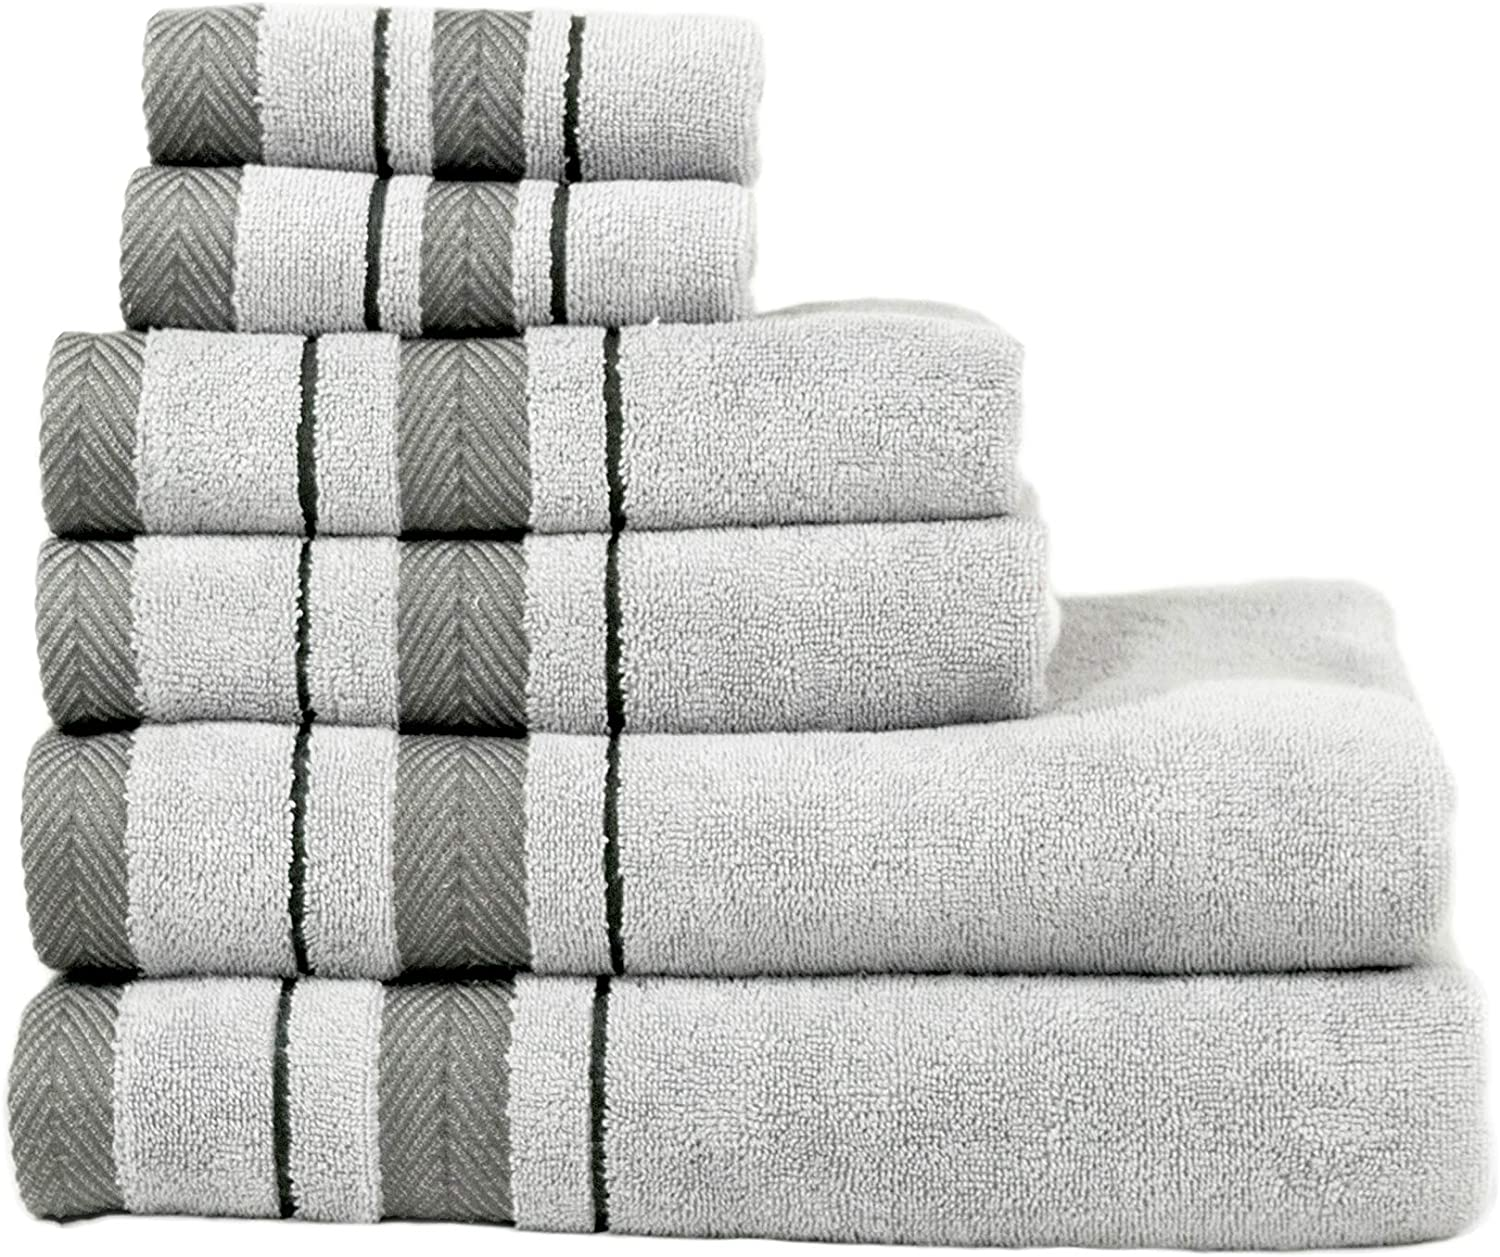 La Serna 6 Piece Towel Set, Combed Cotton 650 GSM, Ultra Soft Luxurious Gray Color, 2 Bath Towels, 2 Hand Towels, 2 Washcloths, Super Absorbent, Machine Washable